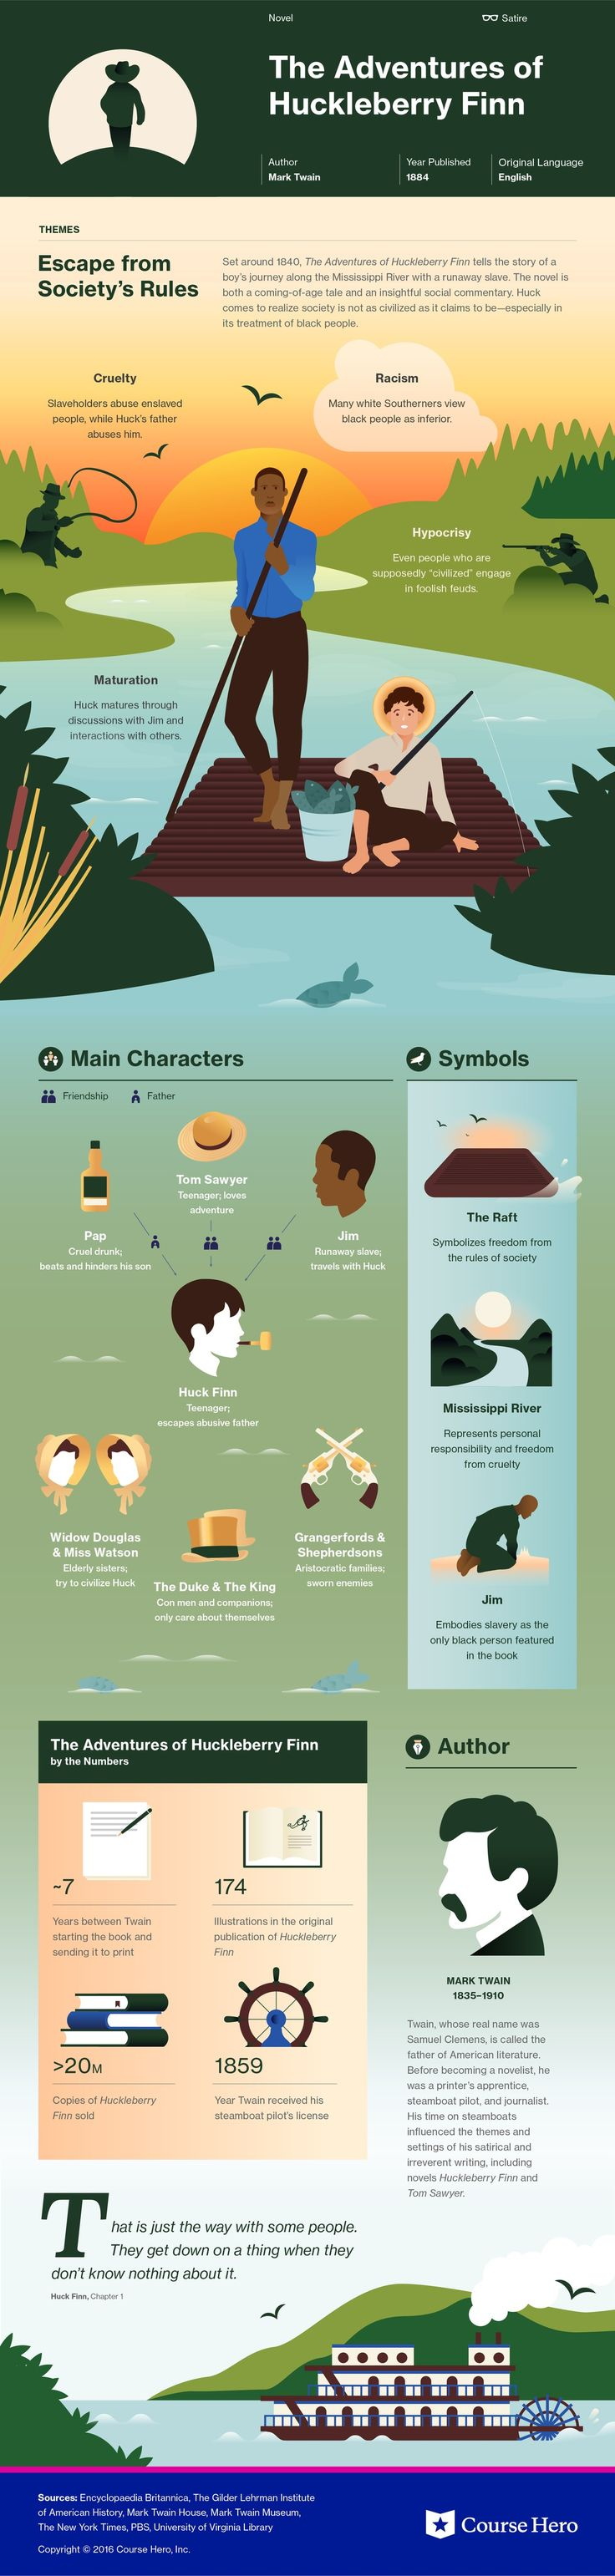 huckleberry finn essay topics argument essay topics for high  17 best ideas about huckleberry finn classic books the adventures of huckleberry finn infographic course hero huck finn essay topics